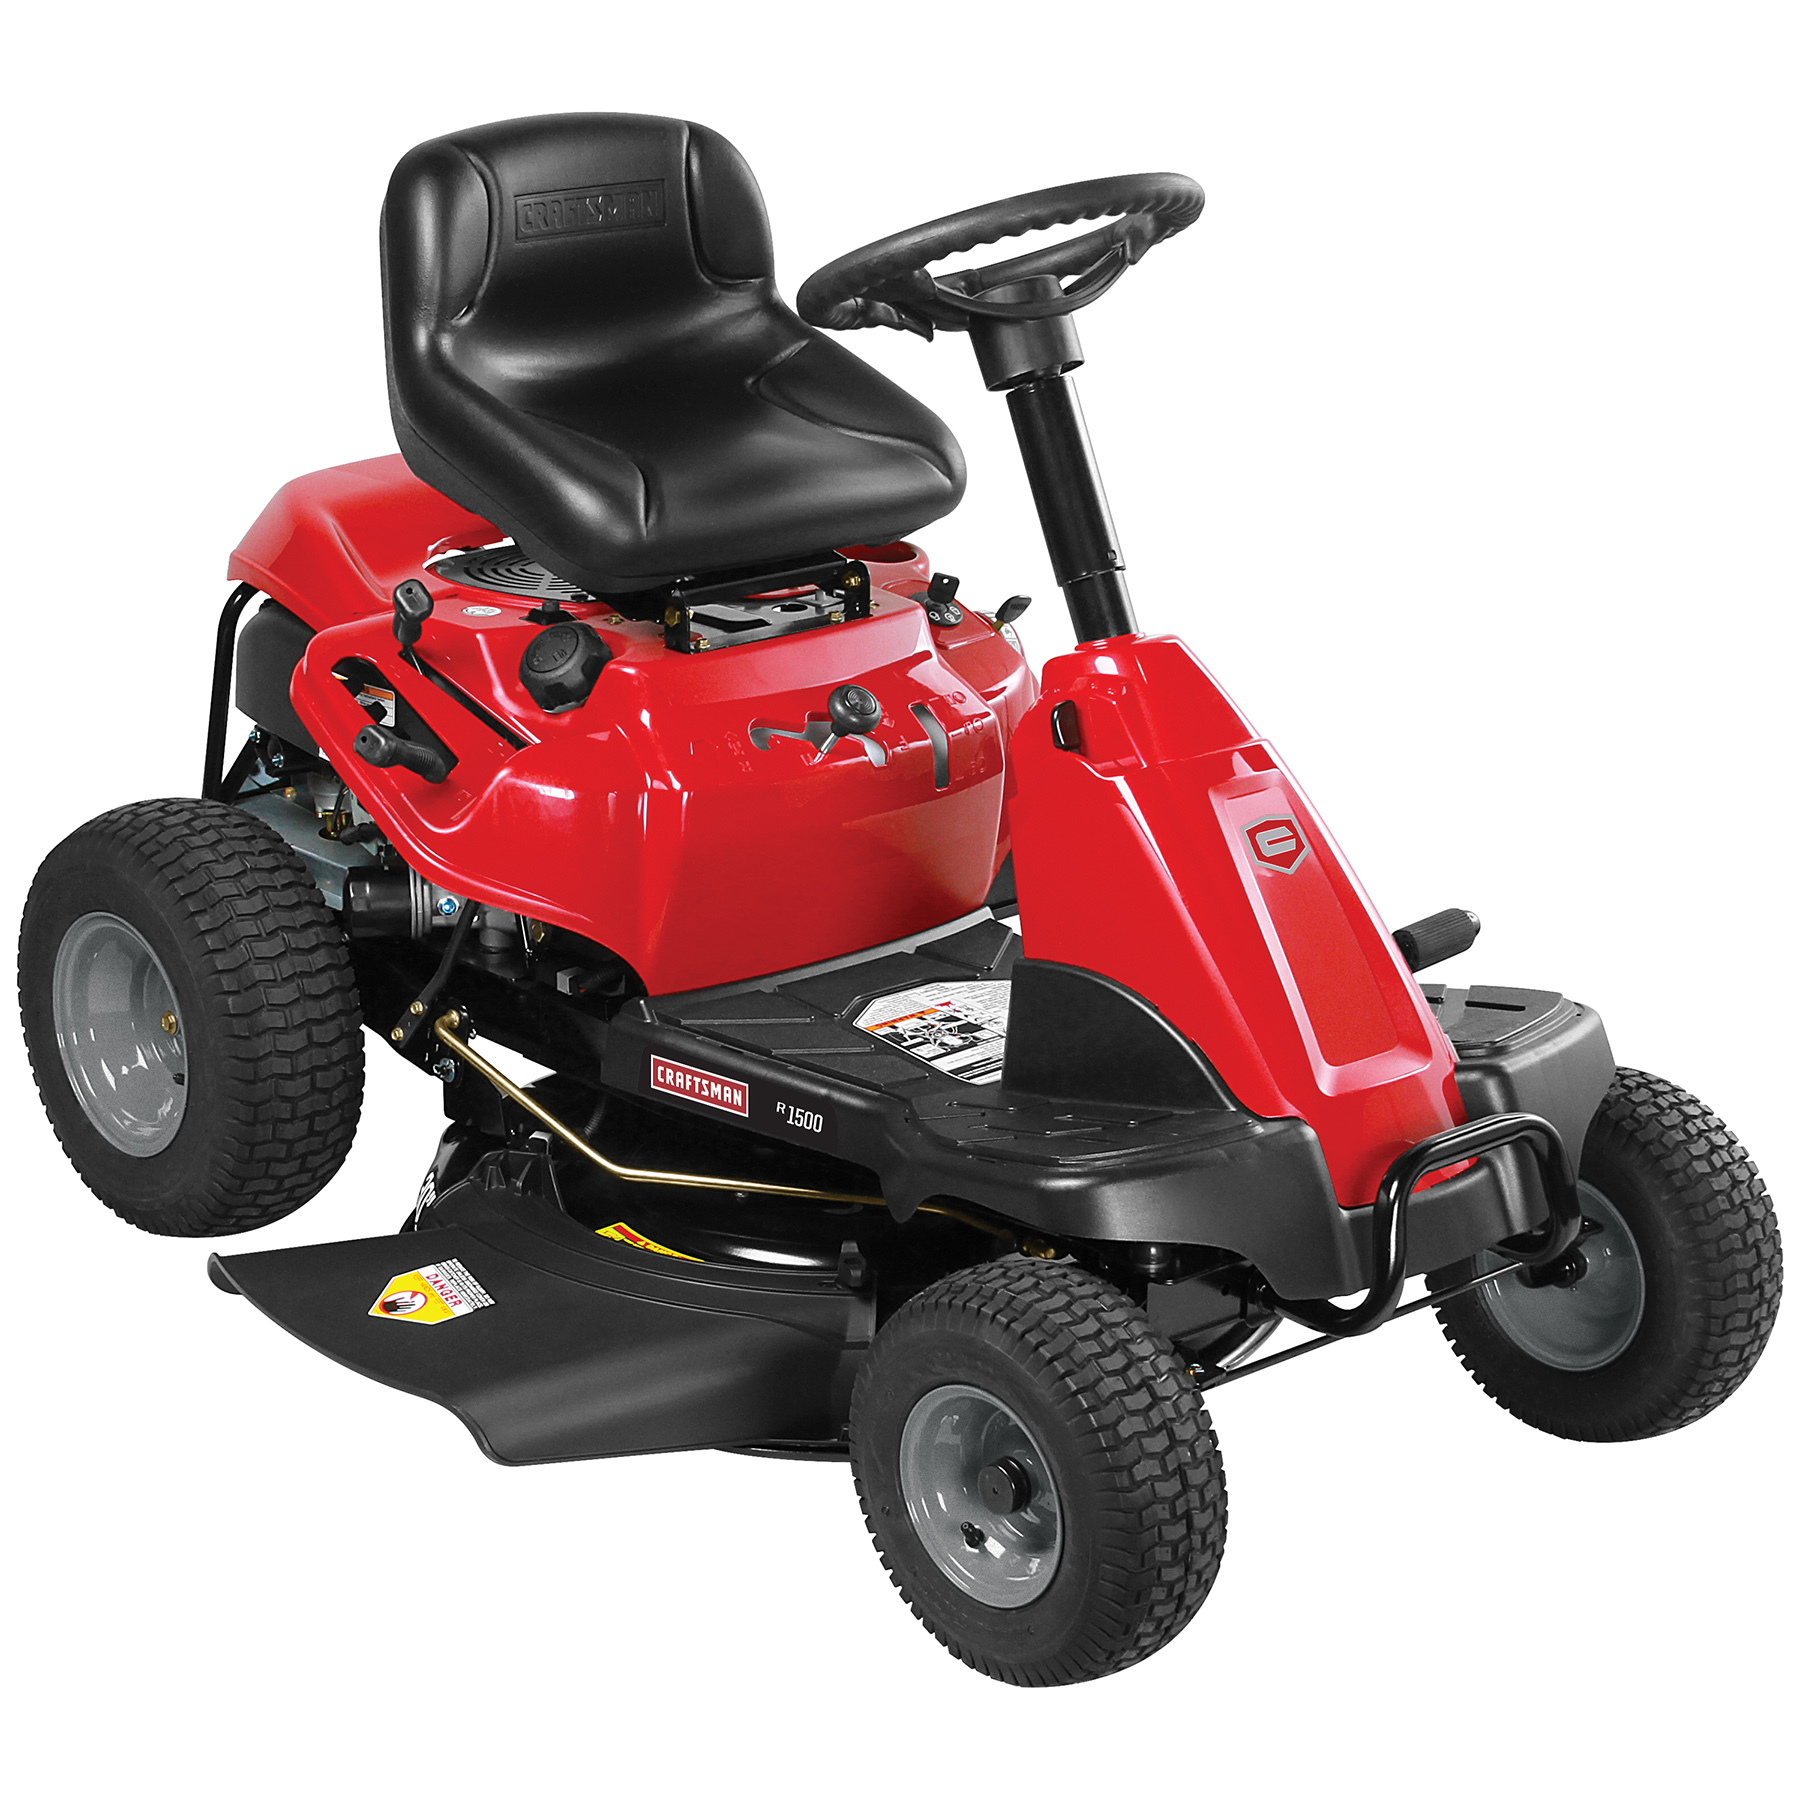 hight resolution of wiring diagram for craftsman riding mower old craftsman riding lawn mower 1 2 hp wiring diagram